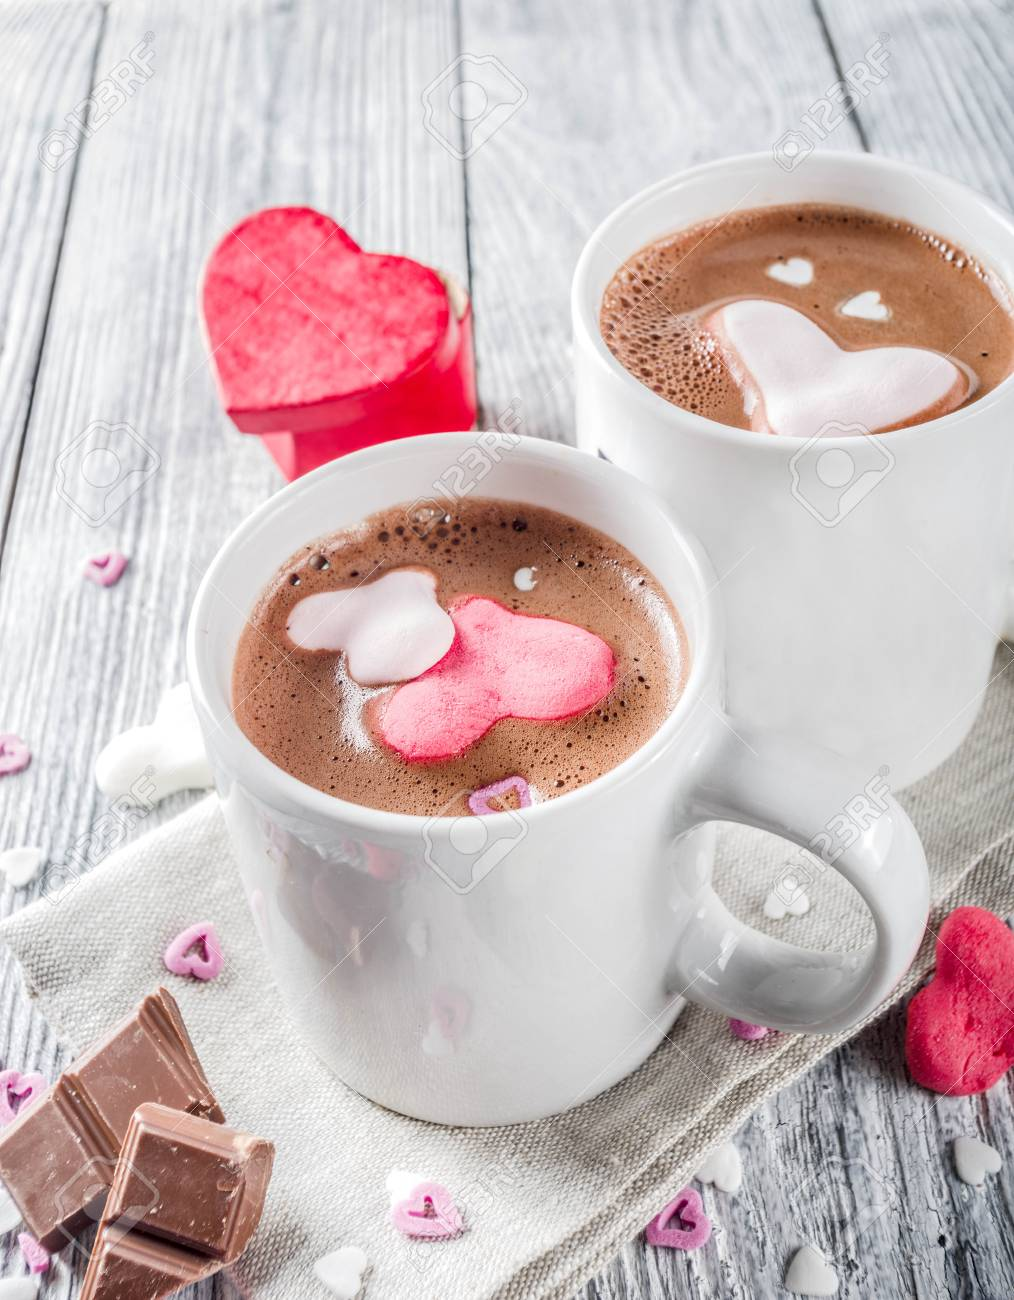 Valentines day treat ideas, two cups hot chocolate drink with marshmallow hearts red pink white color with chocolate pieces, sugar sprinkles, old wooden background copy space top view - 121713602